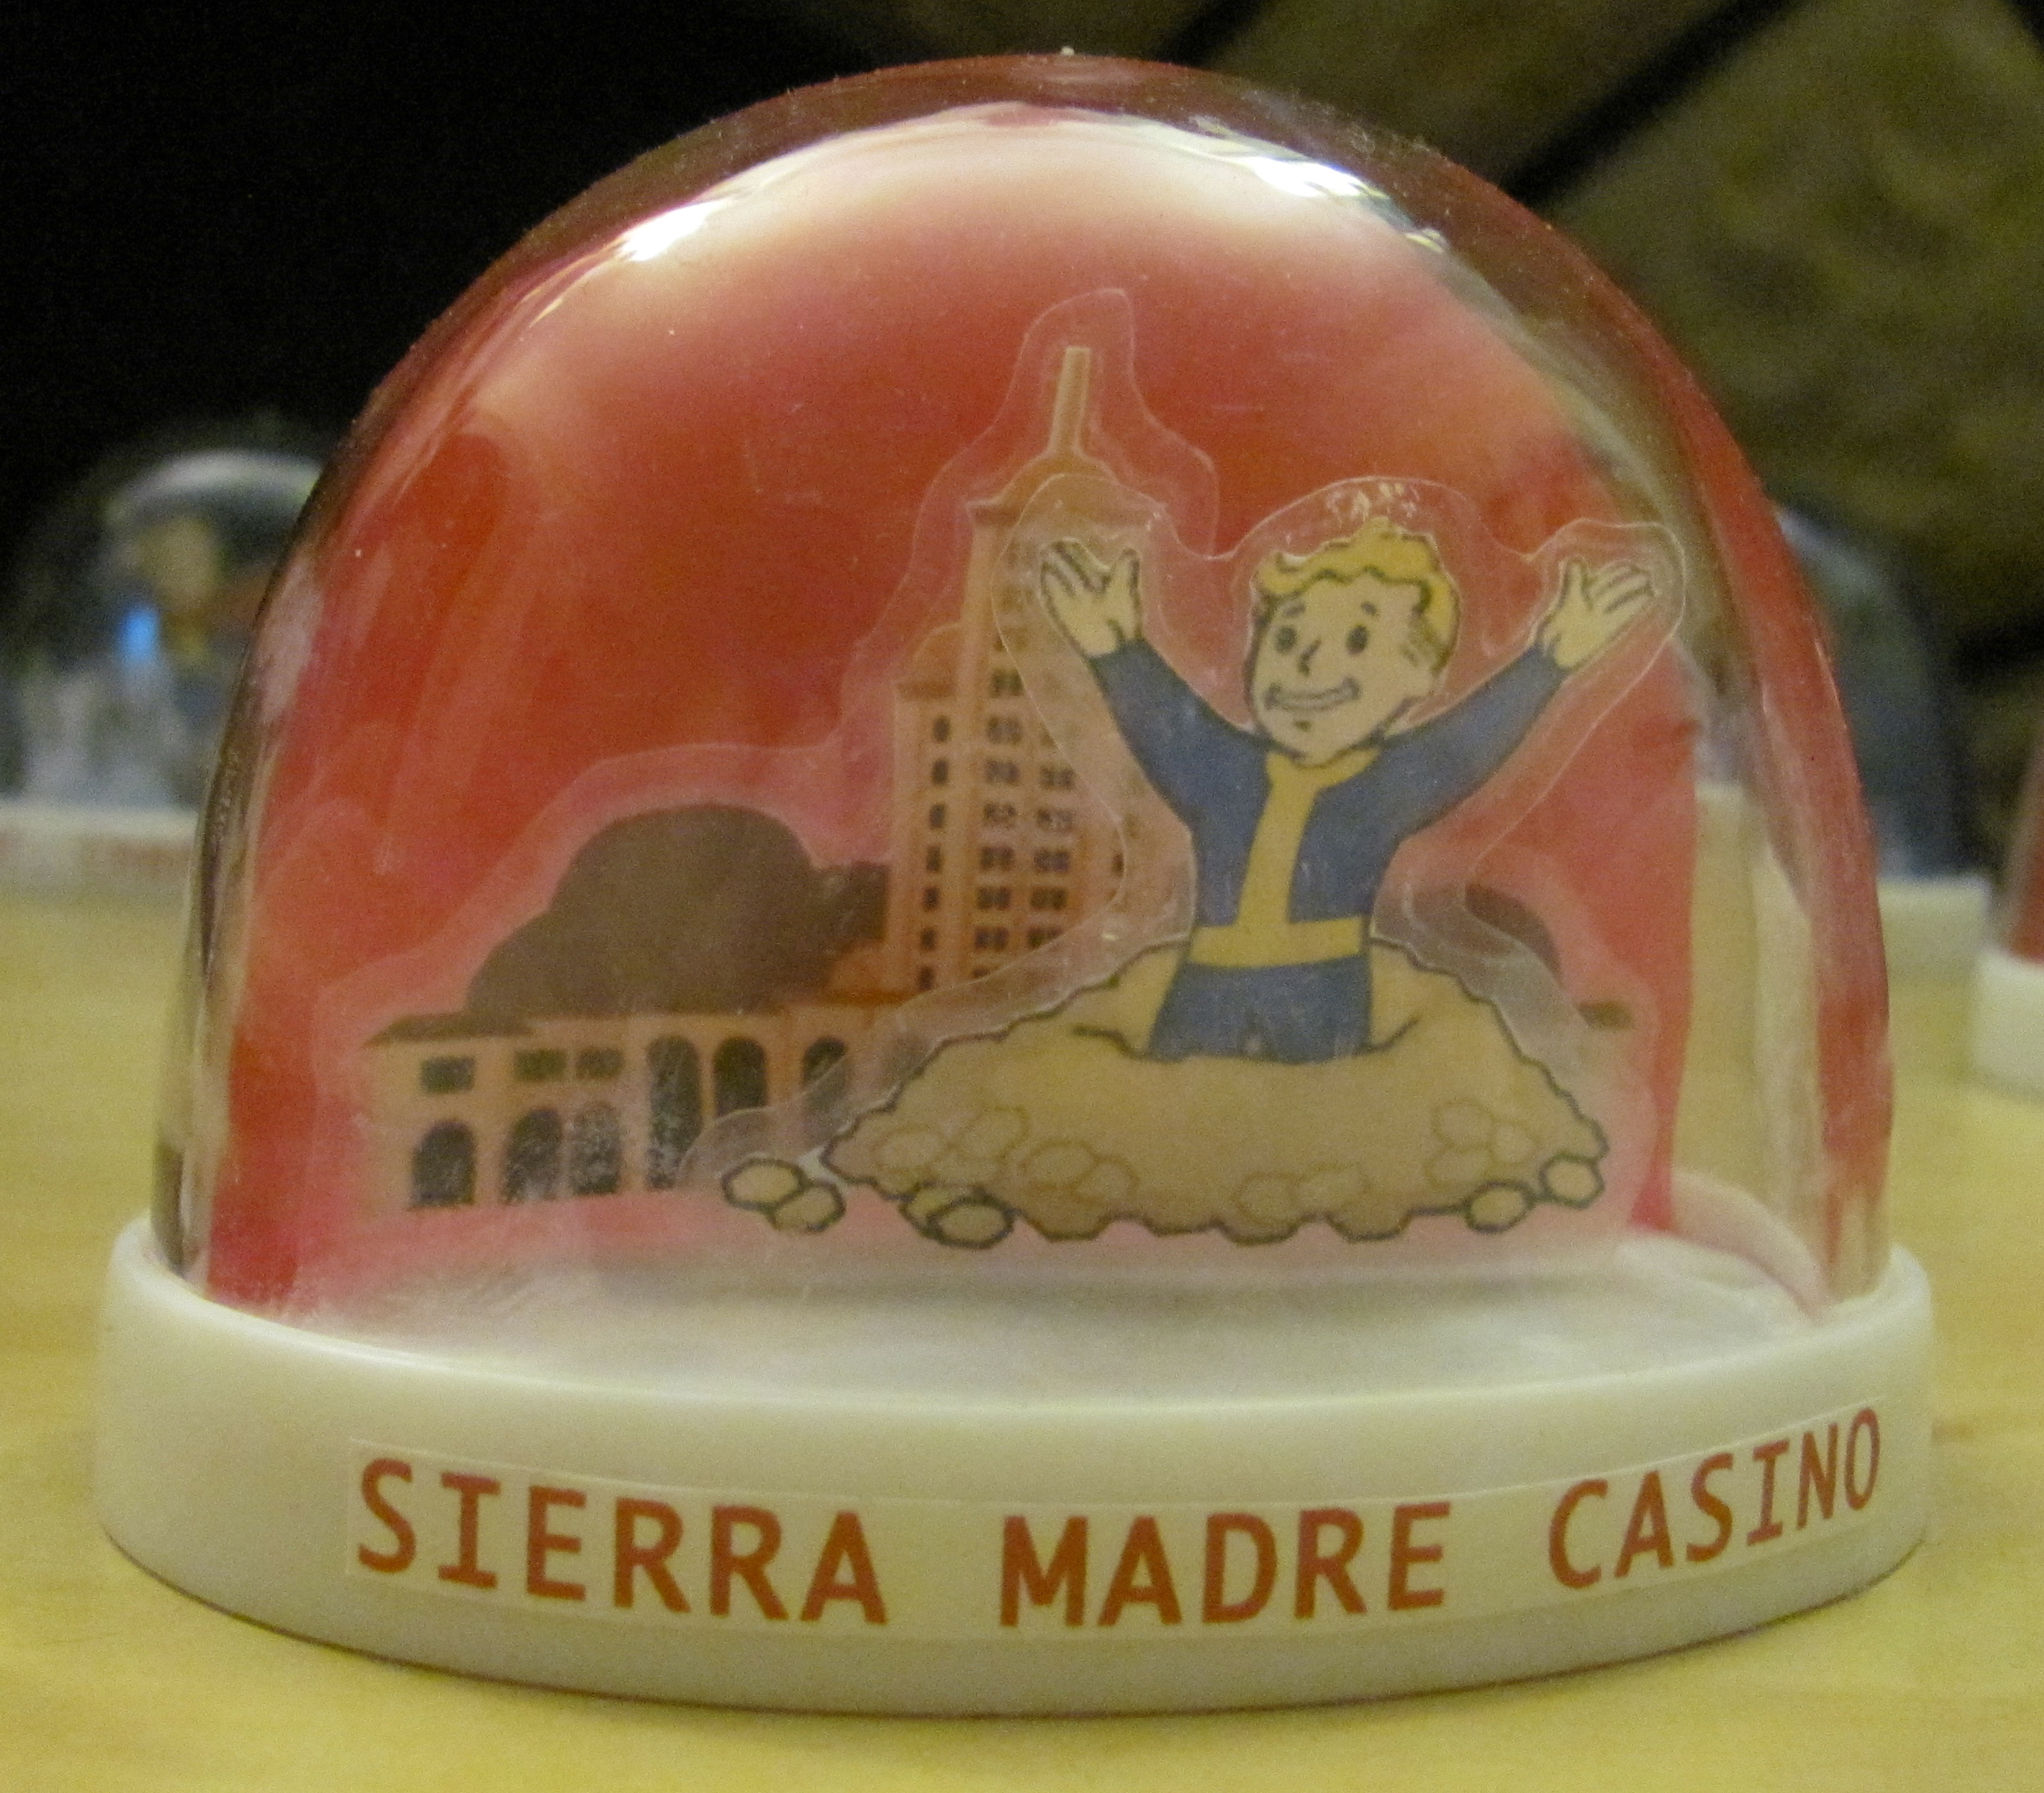 sierra madre casino real life